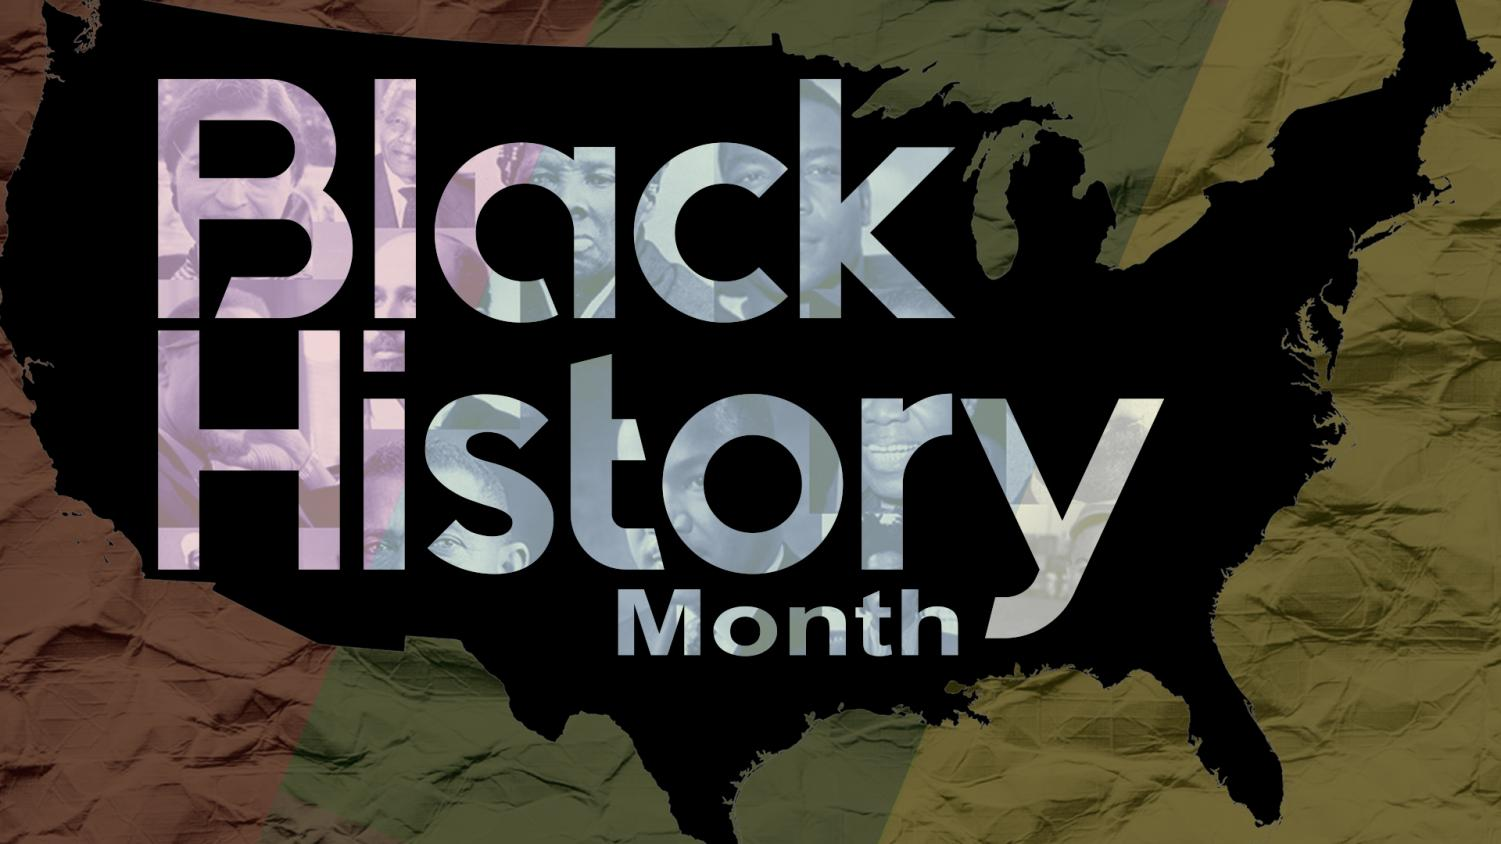 Black History Month celebrates the rich and diverse culture of African-Americans and promotes unity among students.